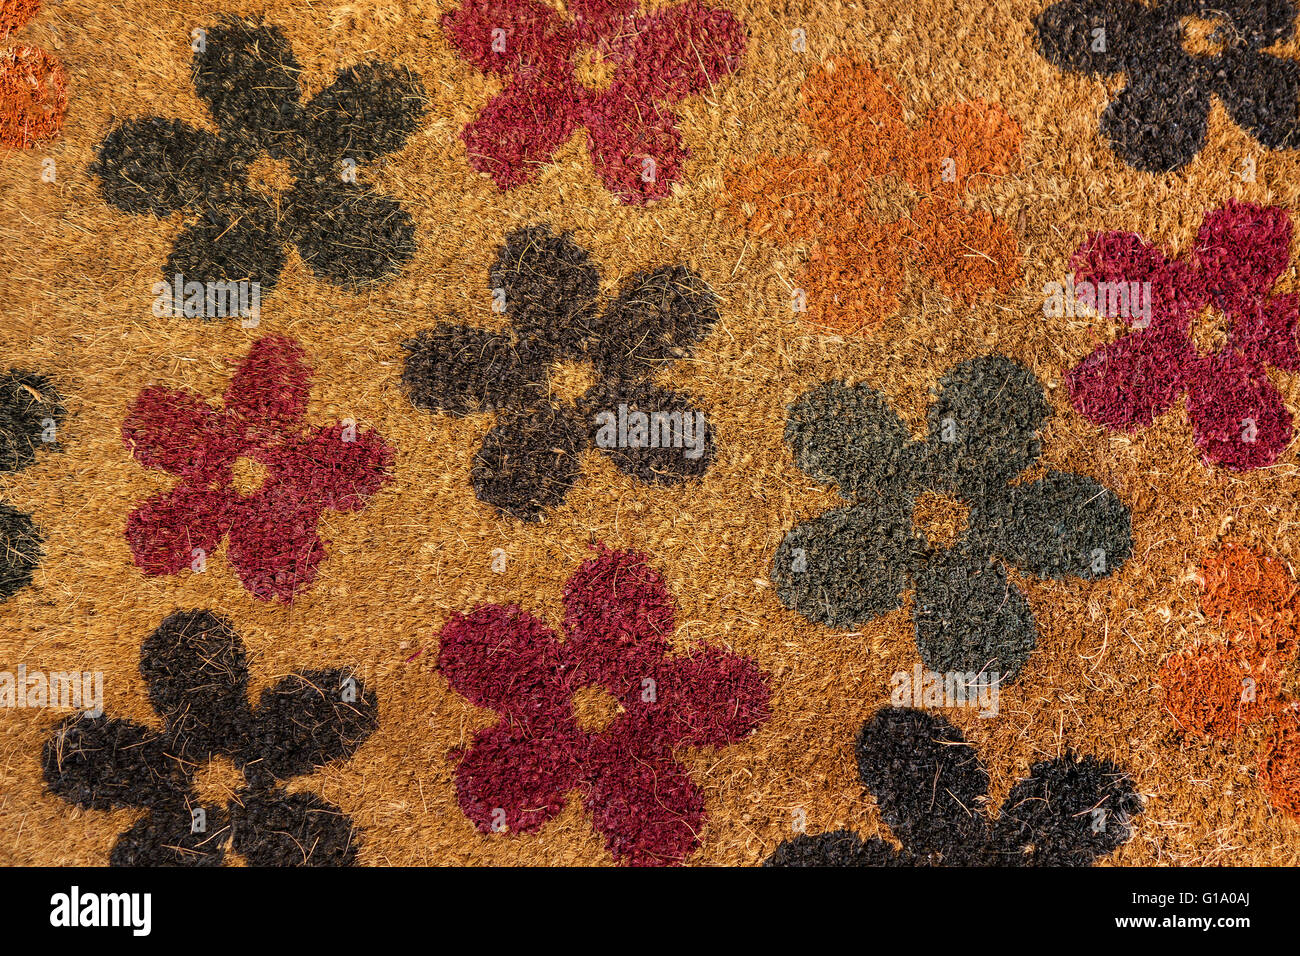 Floral pattern of a coconut matting - Stock Image